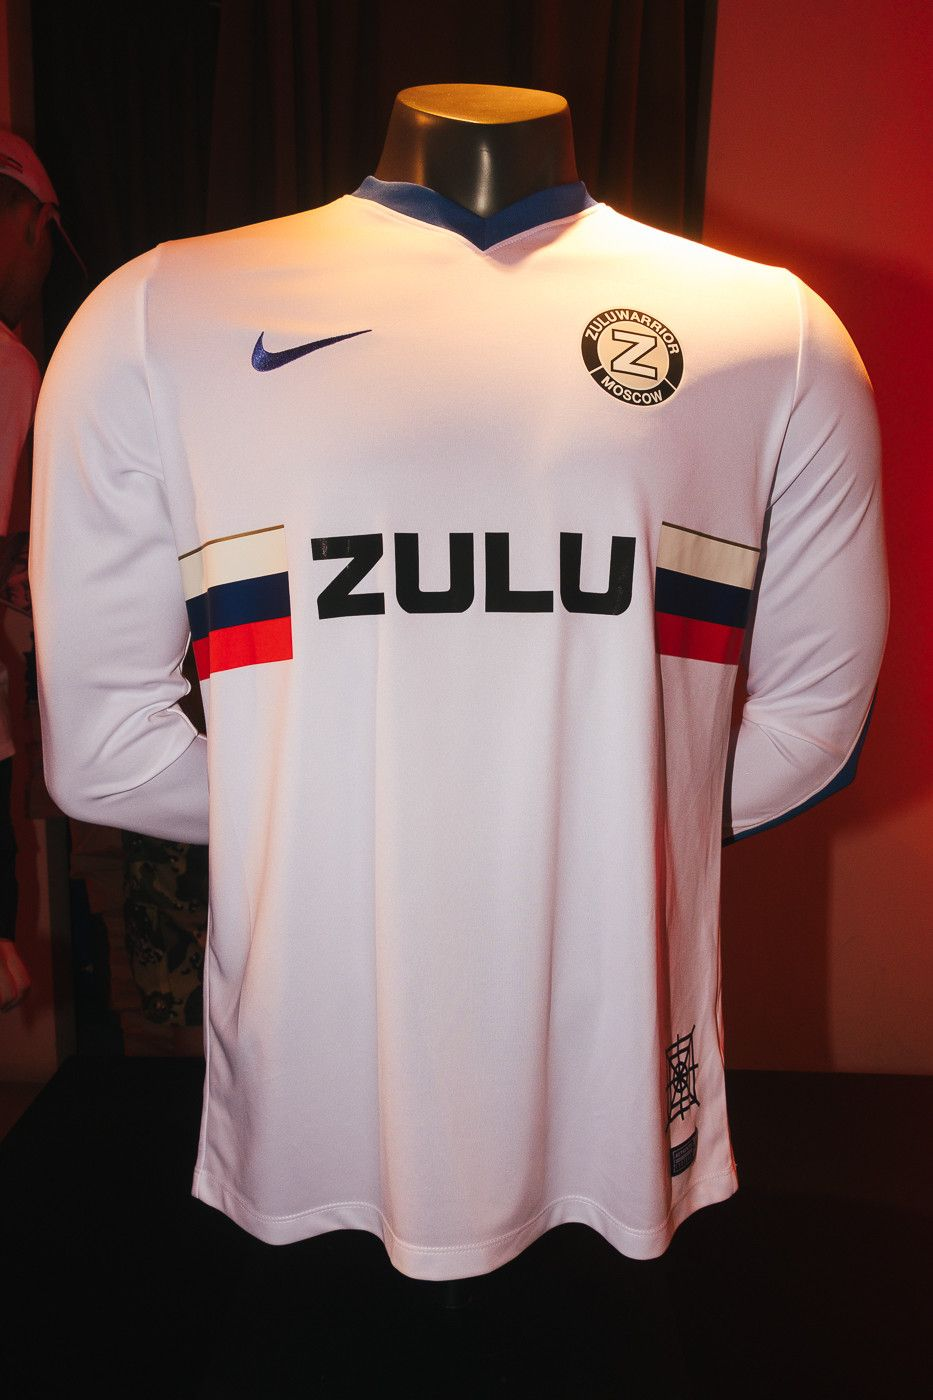 Nike Football Korobka Collection Moscow Jersey Kits Sportwear Soccer 2018  FIFA World Cup Russia ZULUWARRIOR Sever Belief Moscow Cyber69 Fashion 325884a8b3025